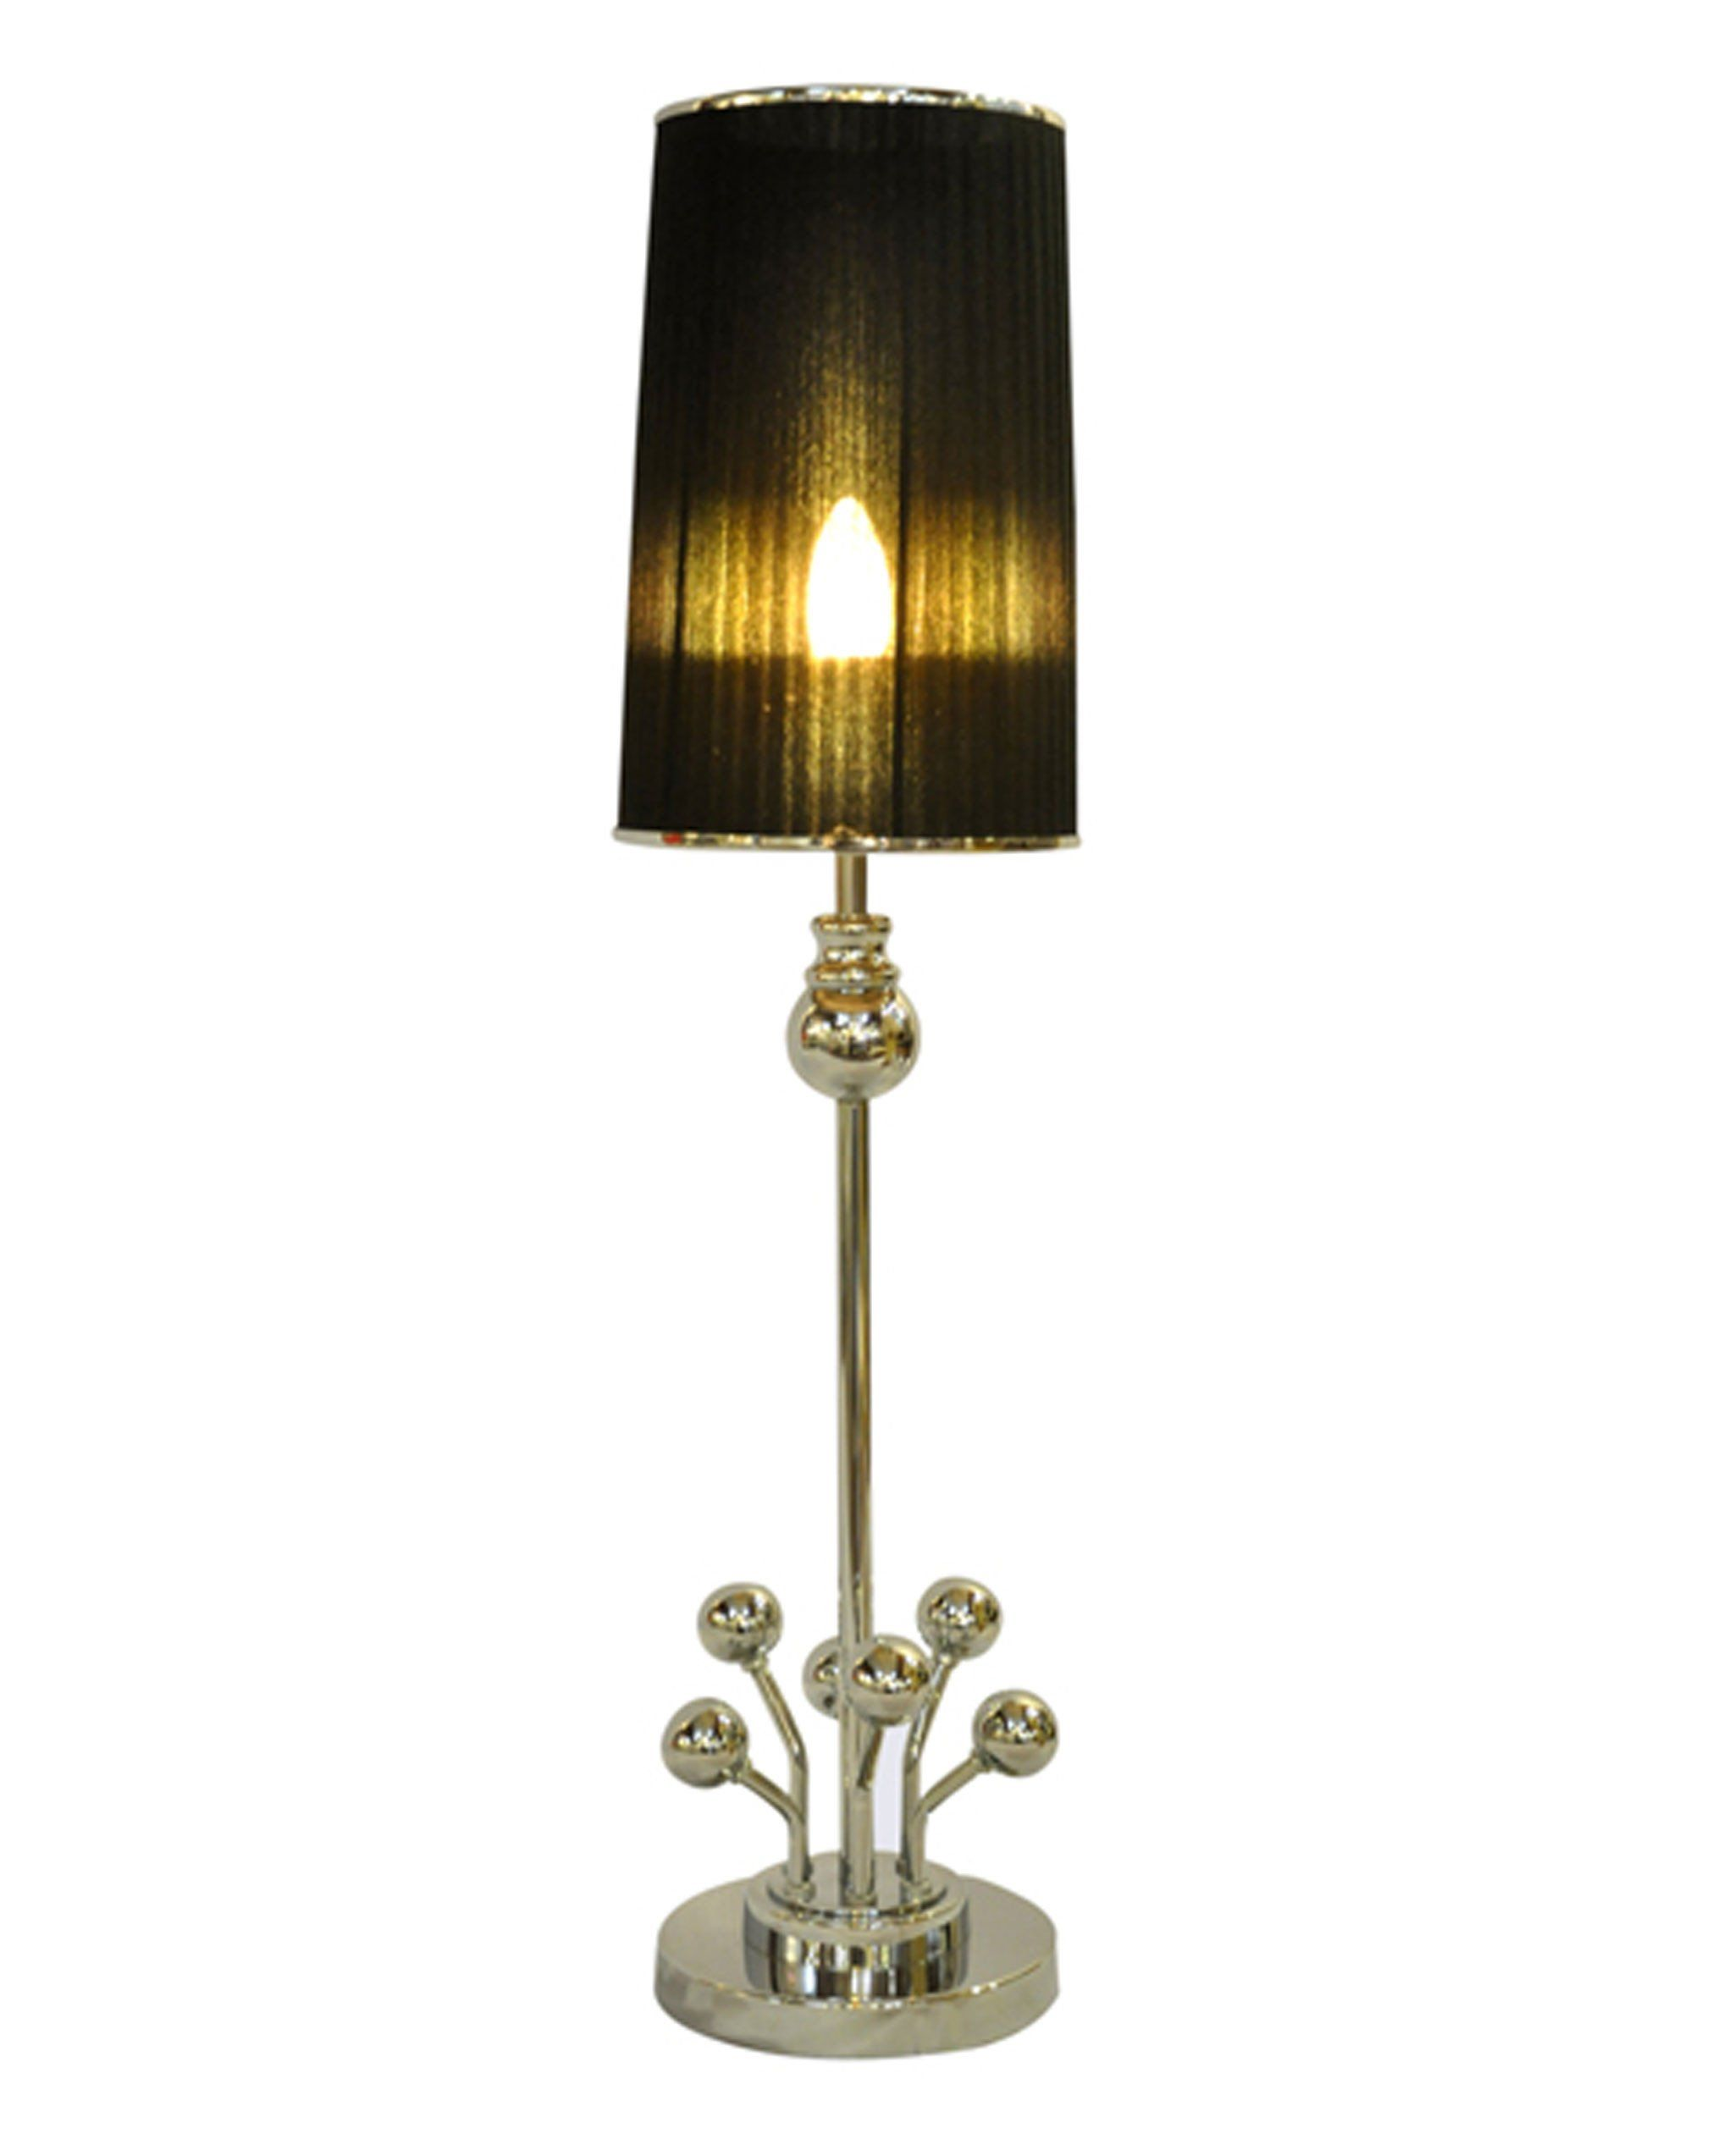 TABLE LAMP KH-1-321 Lamps HOMDECACC